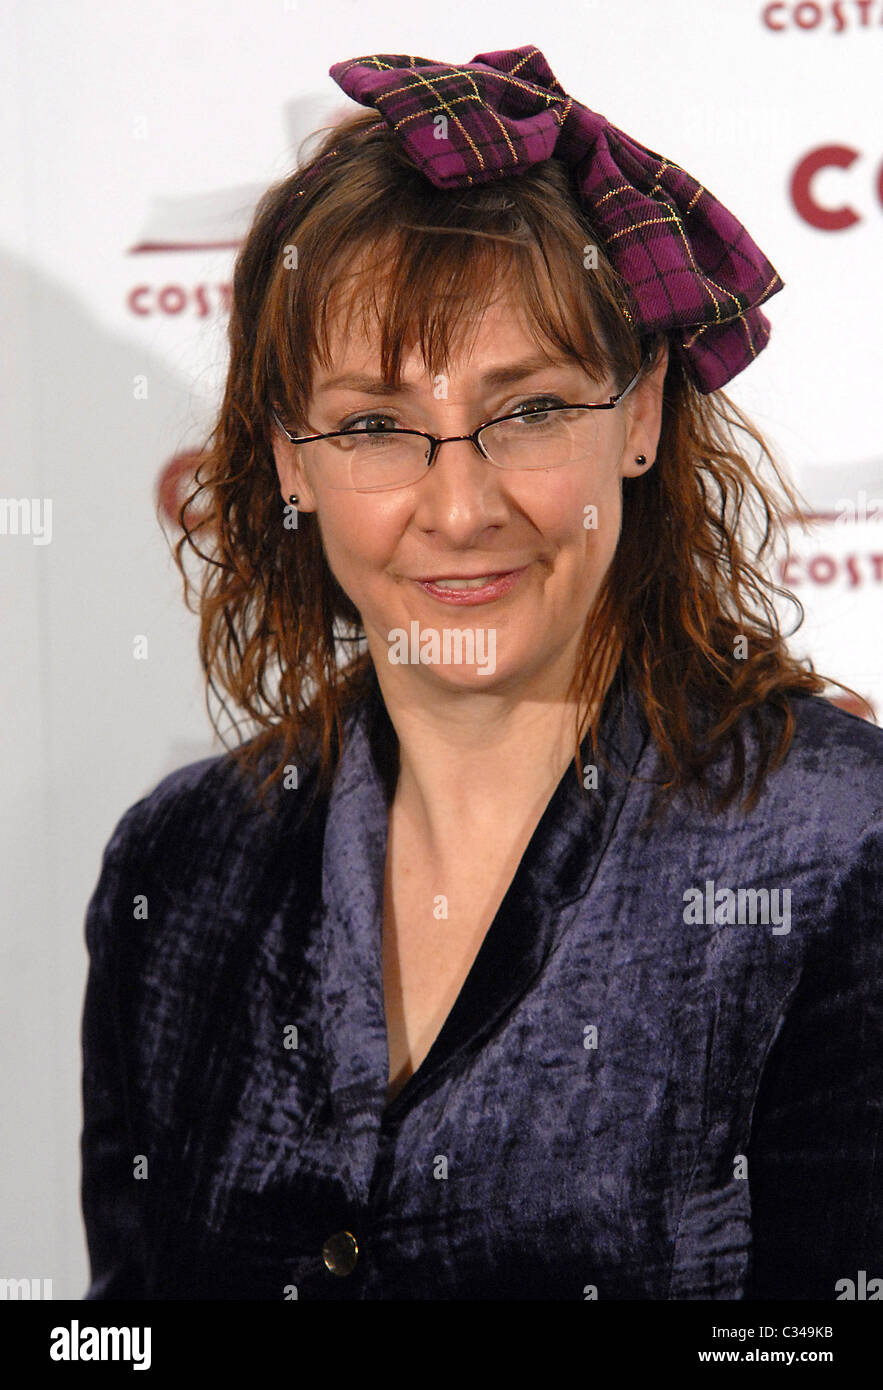 Pauline McLynn 2008 Costa Book of the Year held at the Stock